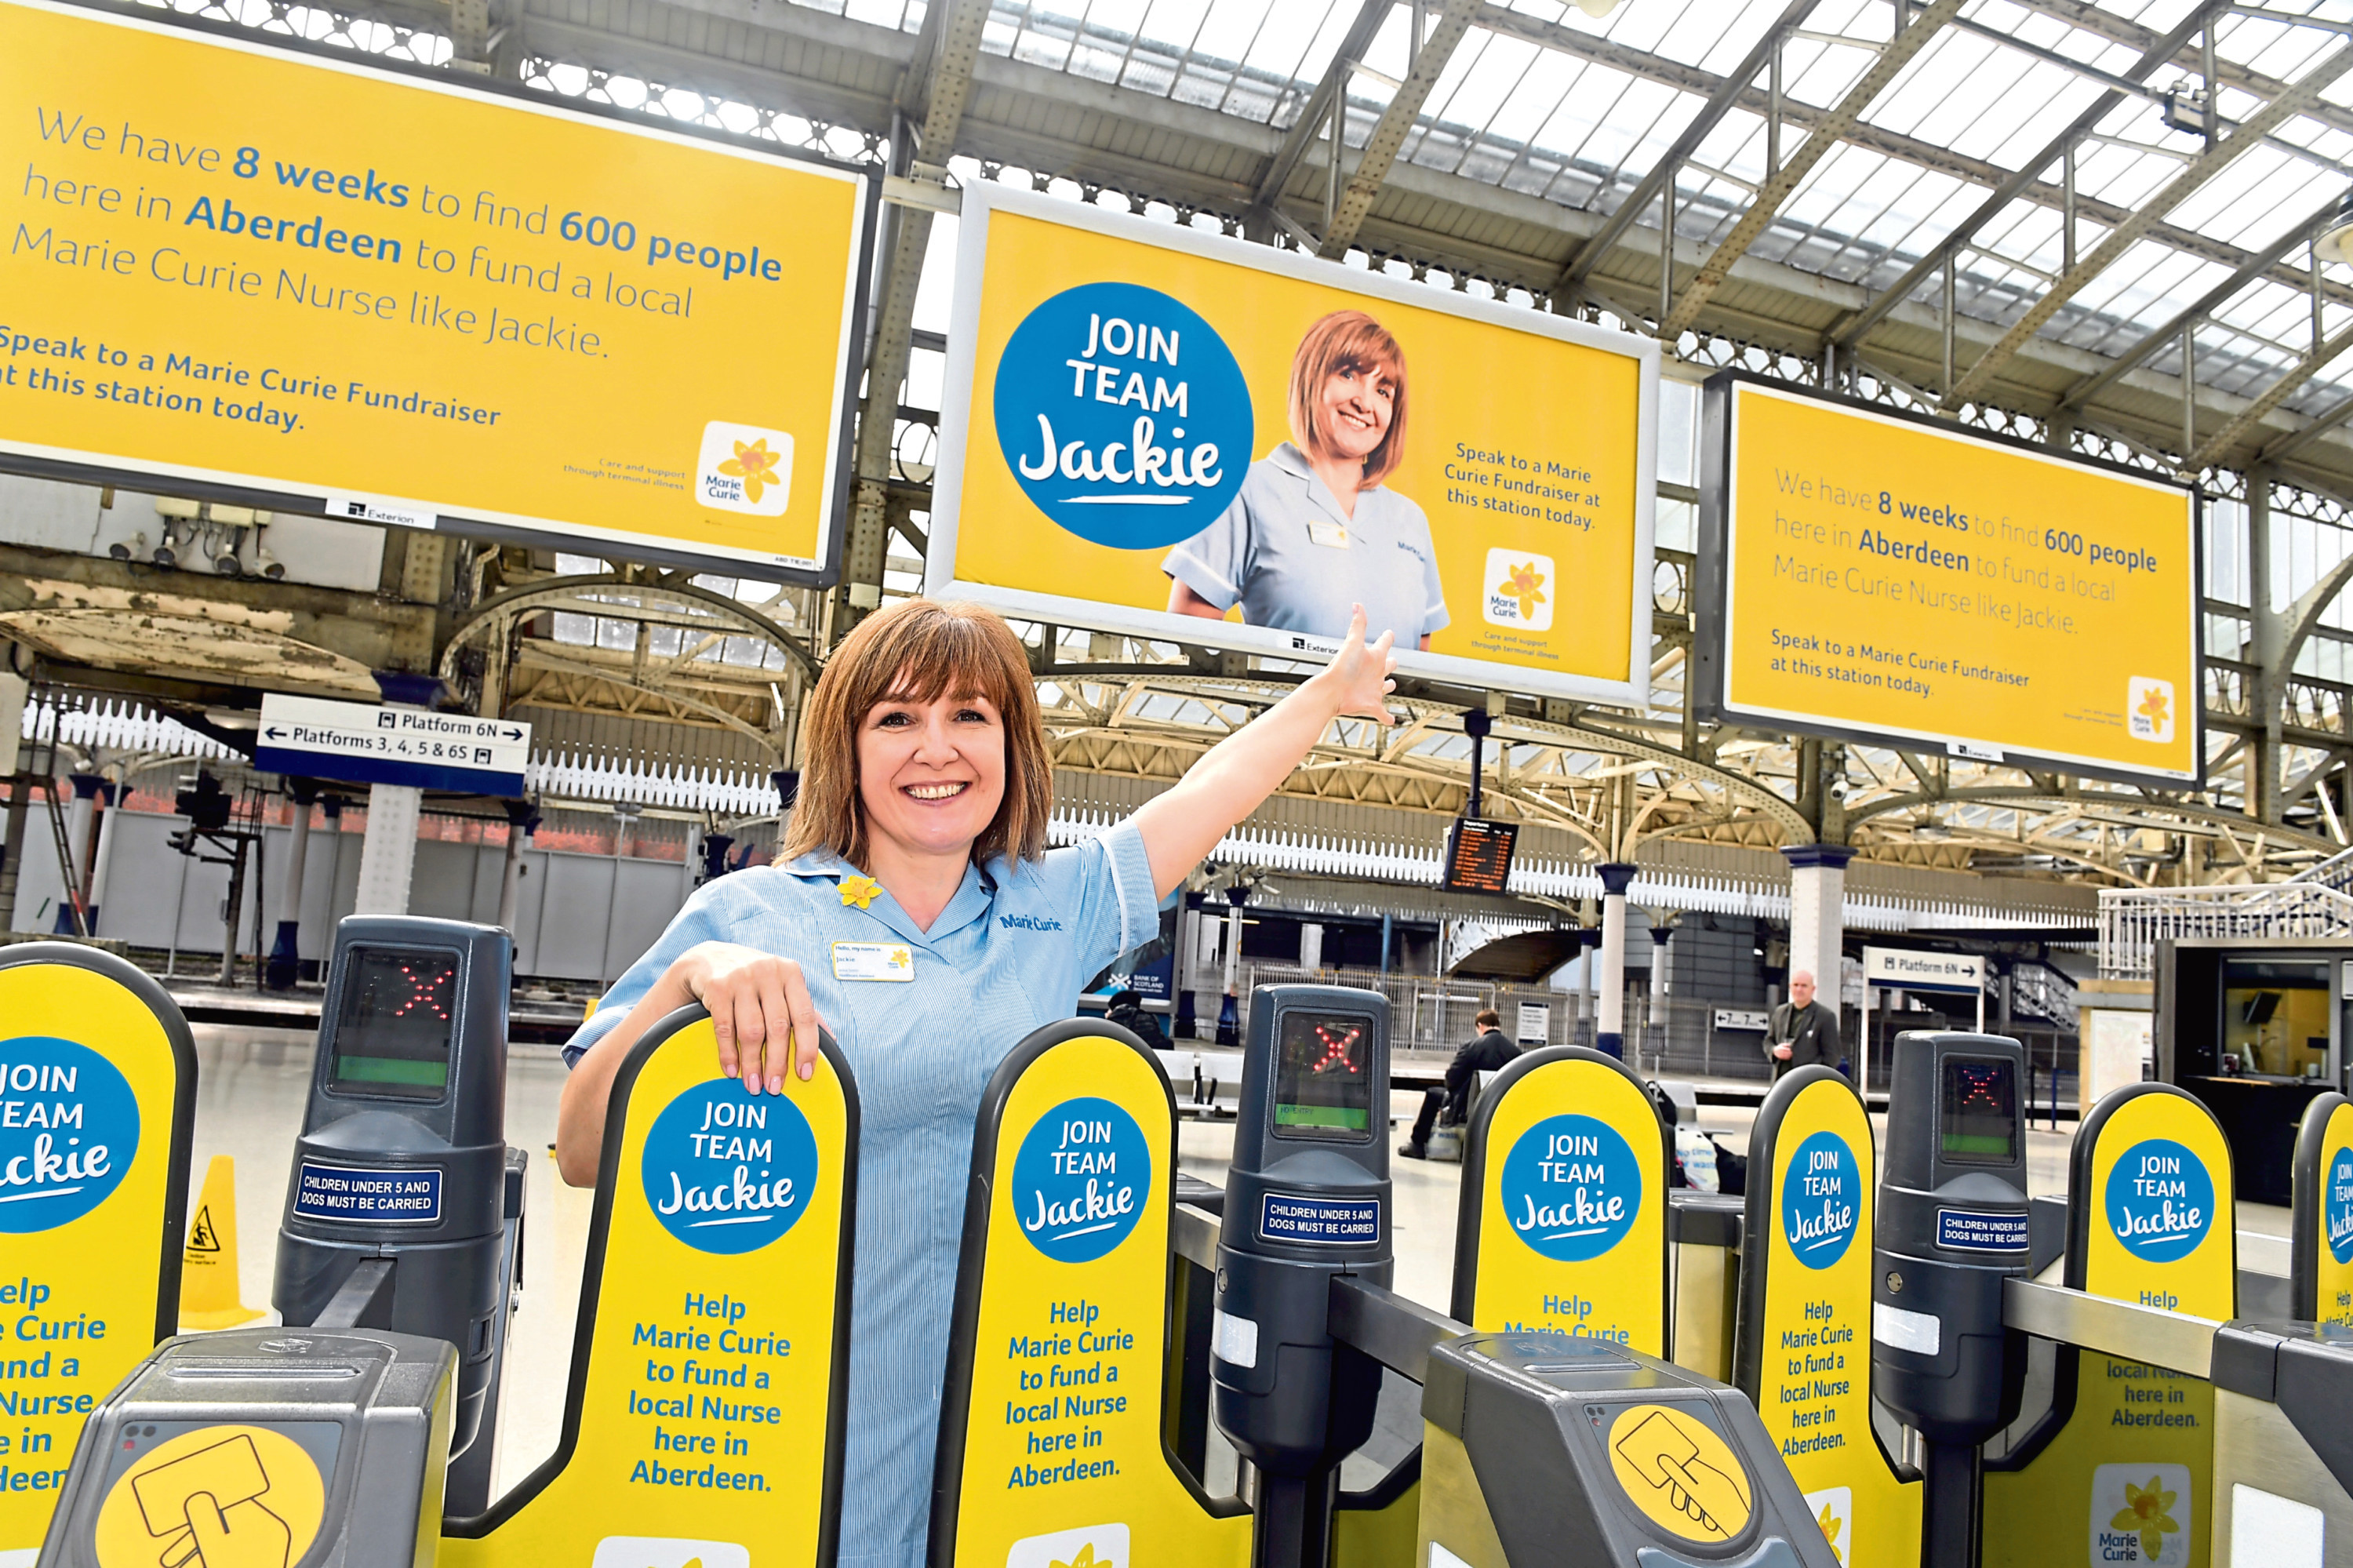 Marie Curie launched their 'Team Jackie' Campaign at Aberdeen railway station